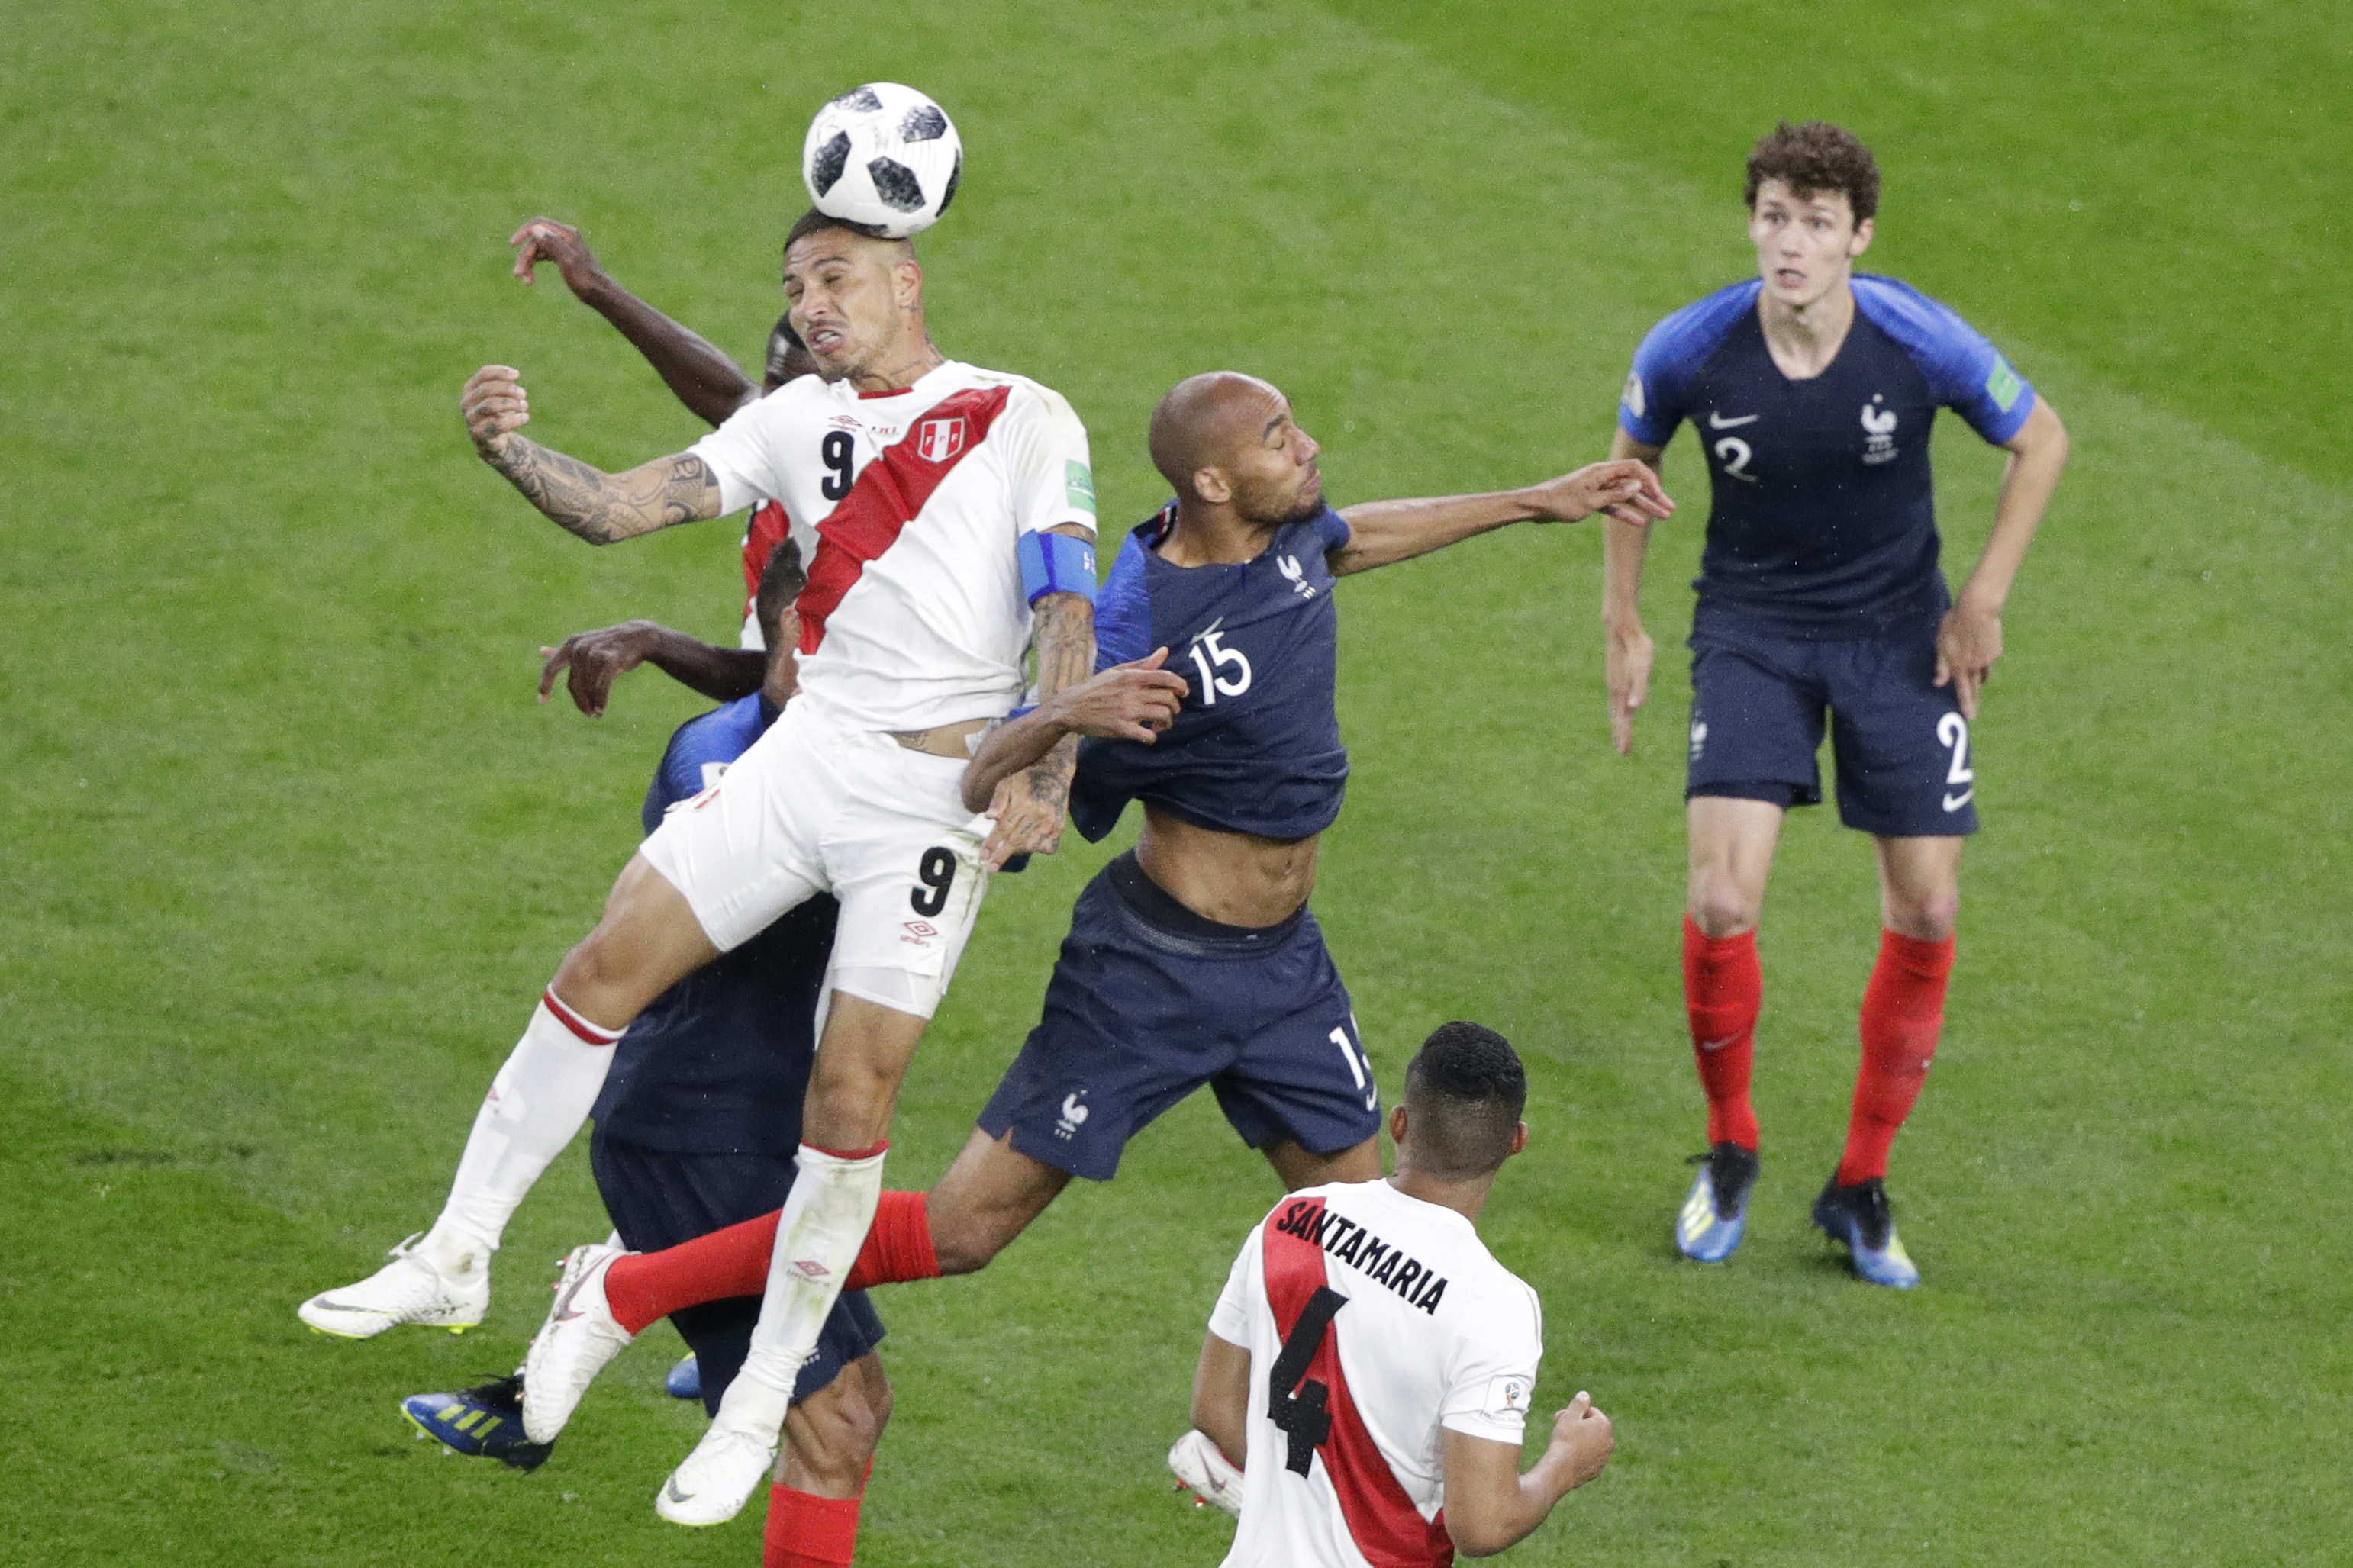 "<div class=""meta image-caption""><div class=""origin-logo origin-image none""><span>none</span></div><span class=""caption-text"">Peru's Paolo Guerrero, left, and France's Steven Nzonzi challenge for the ball during the group C match between France and Peru in the Yekaterinburg Arena on Thursday, June 21. (Mark Baker/AP Photo)</span></div>"